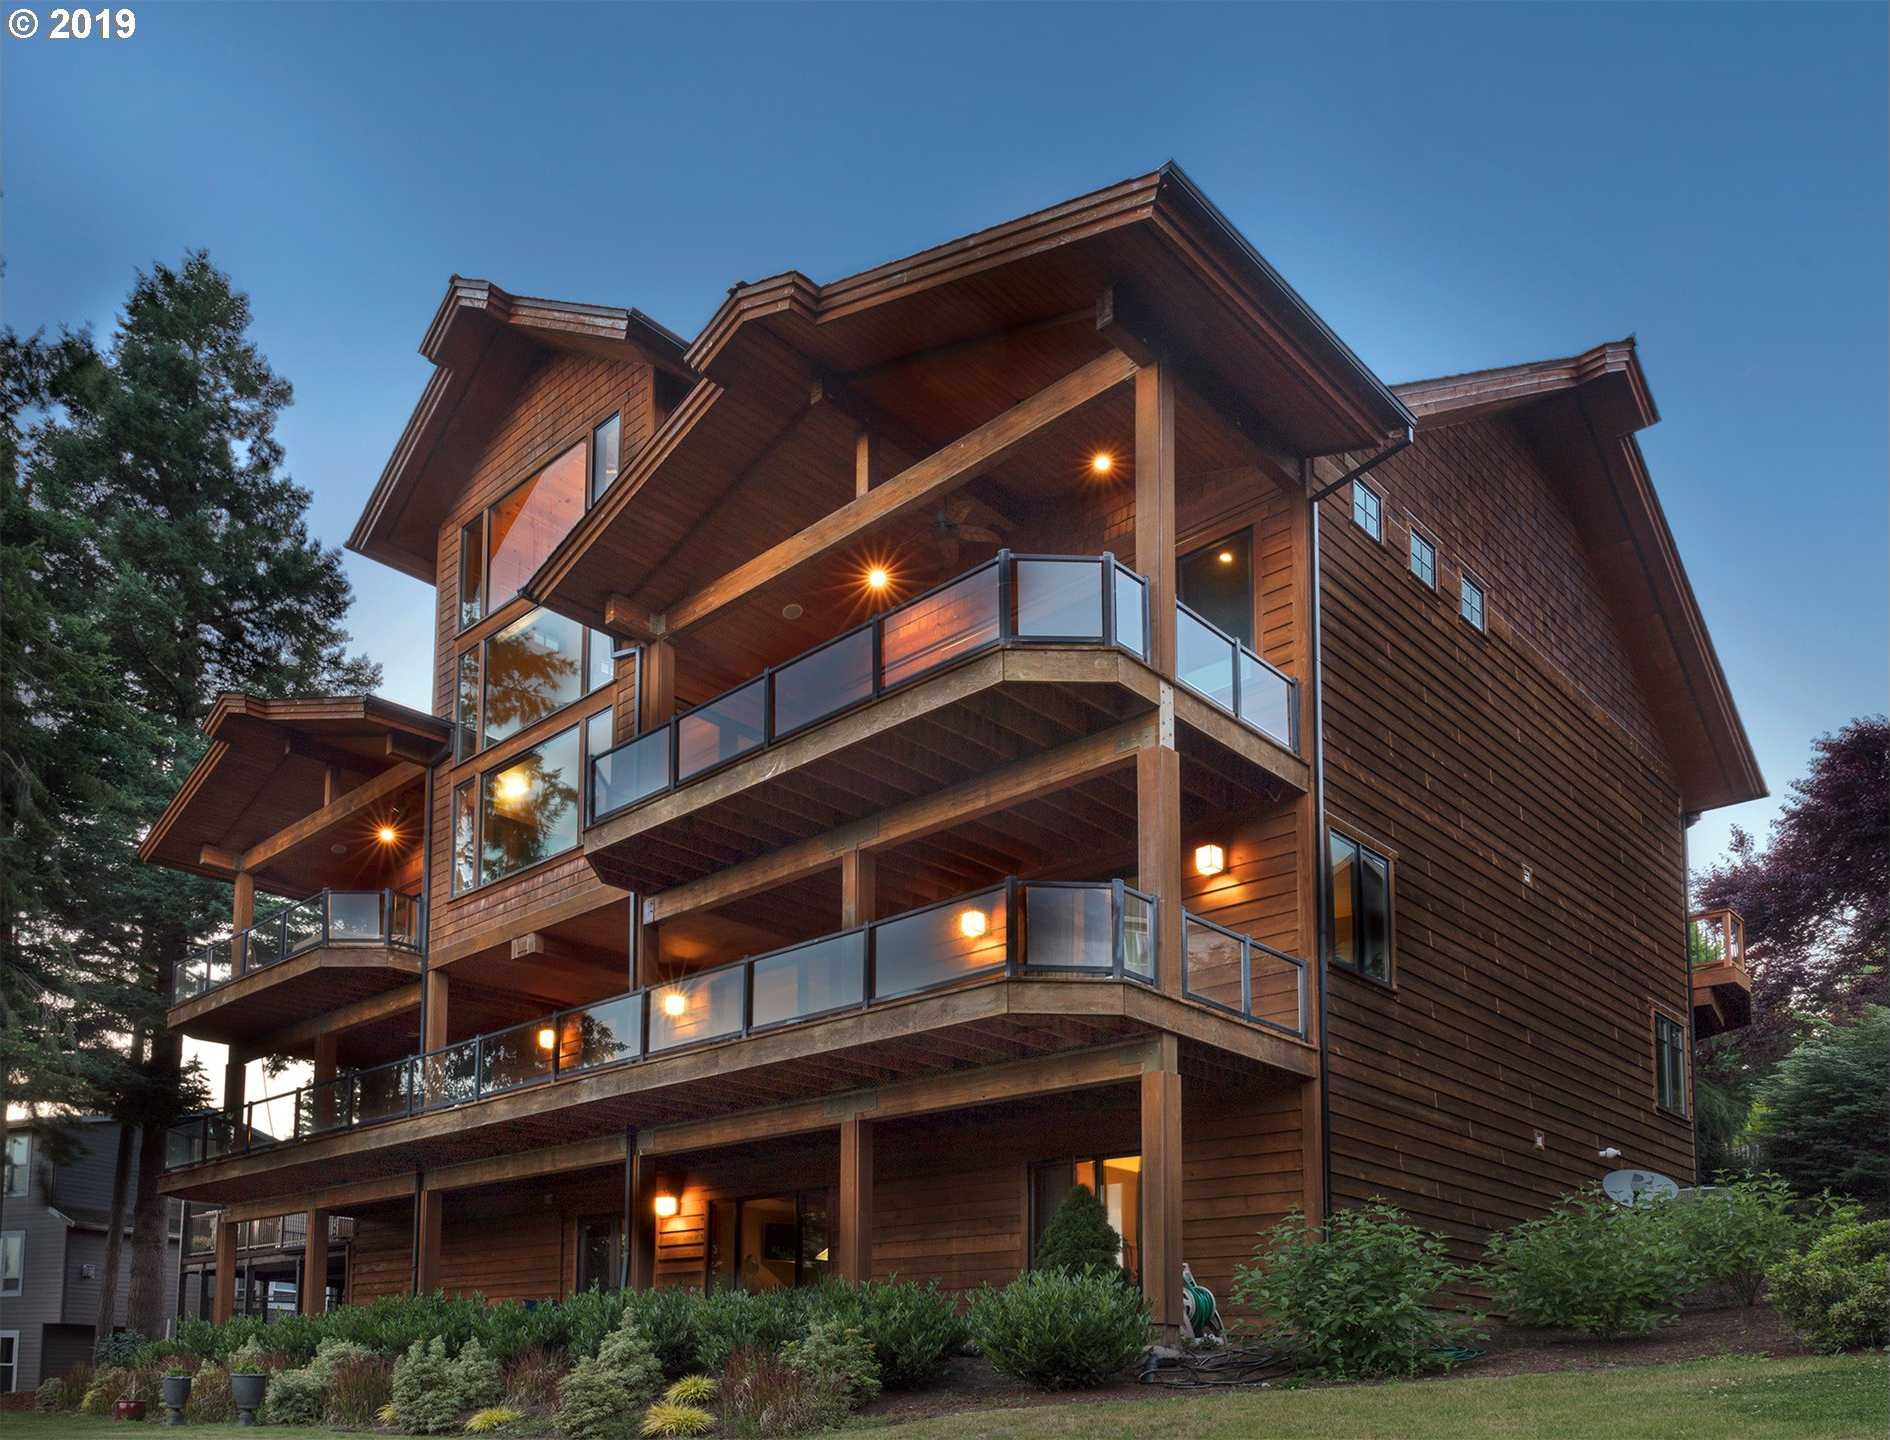 $1,448,000 - 5Br/5Ba -  for Sale in West Linn